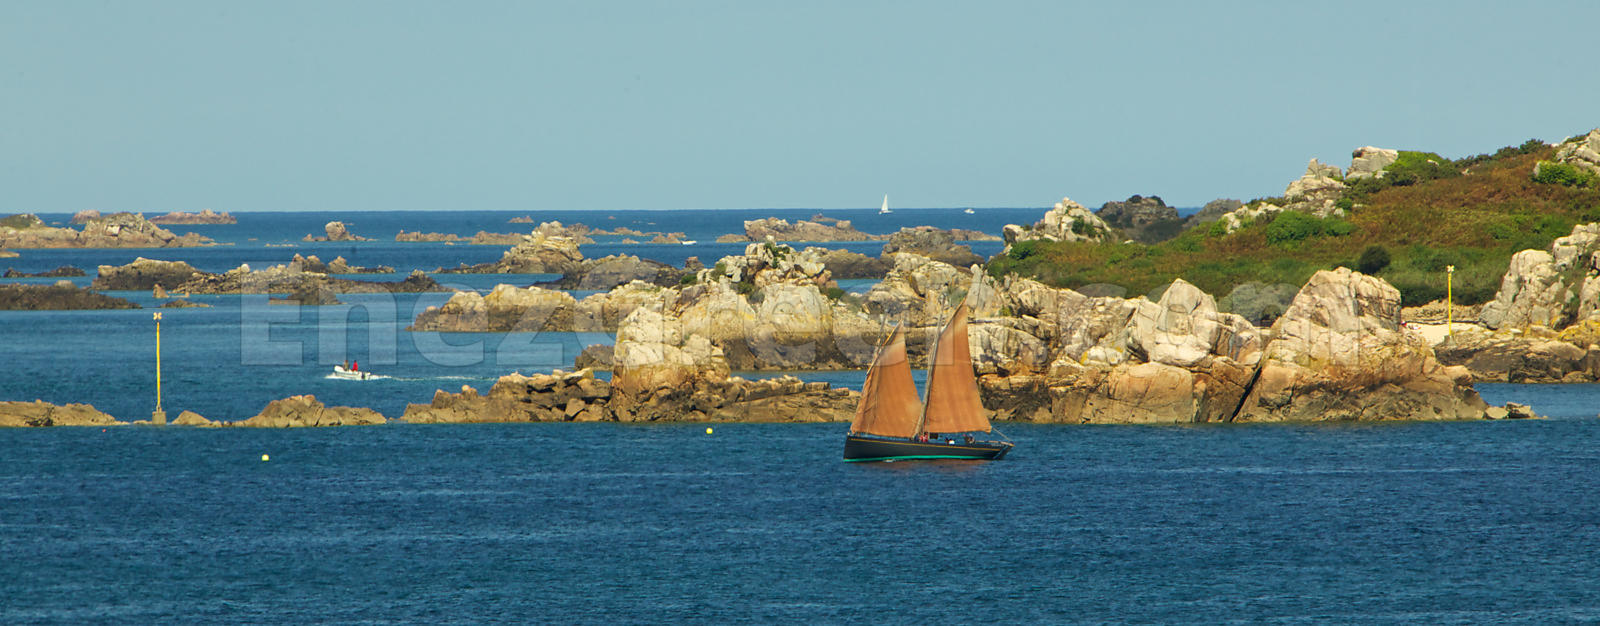 Traditional fishing boat in Bréhat archipelago